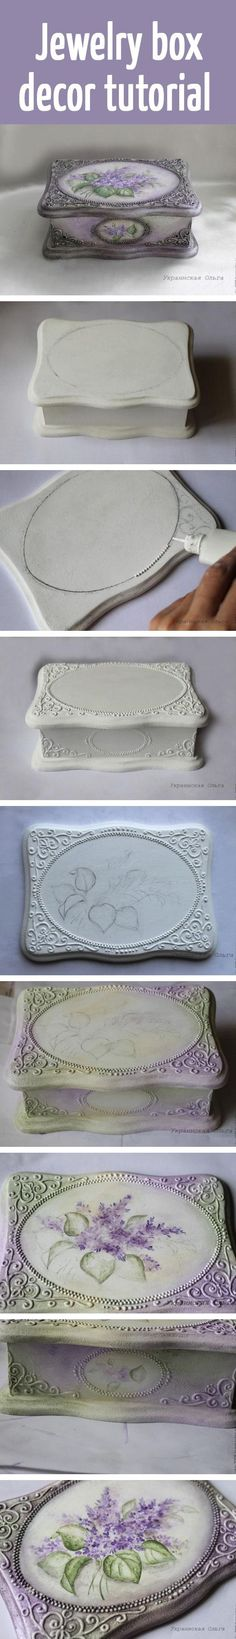 Jewelry box decor tutorial